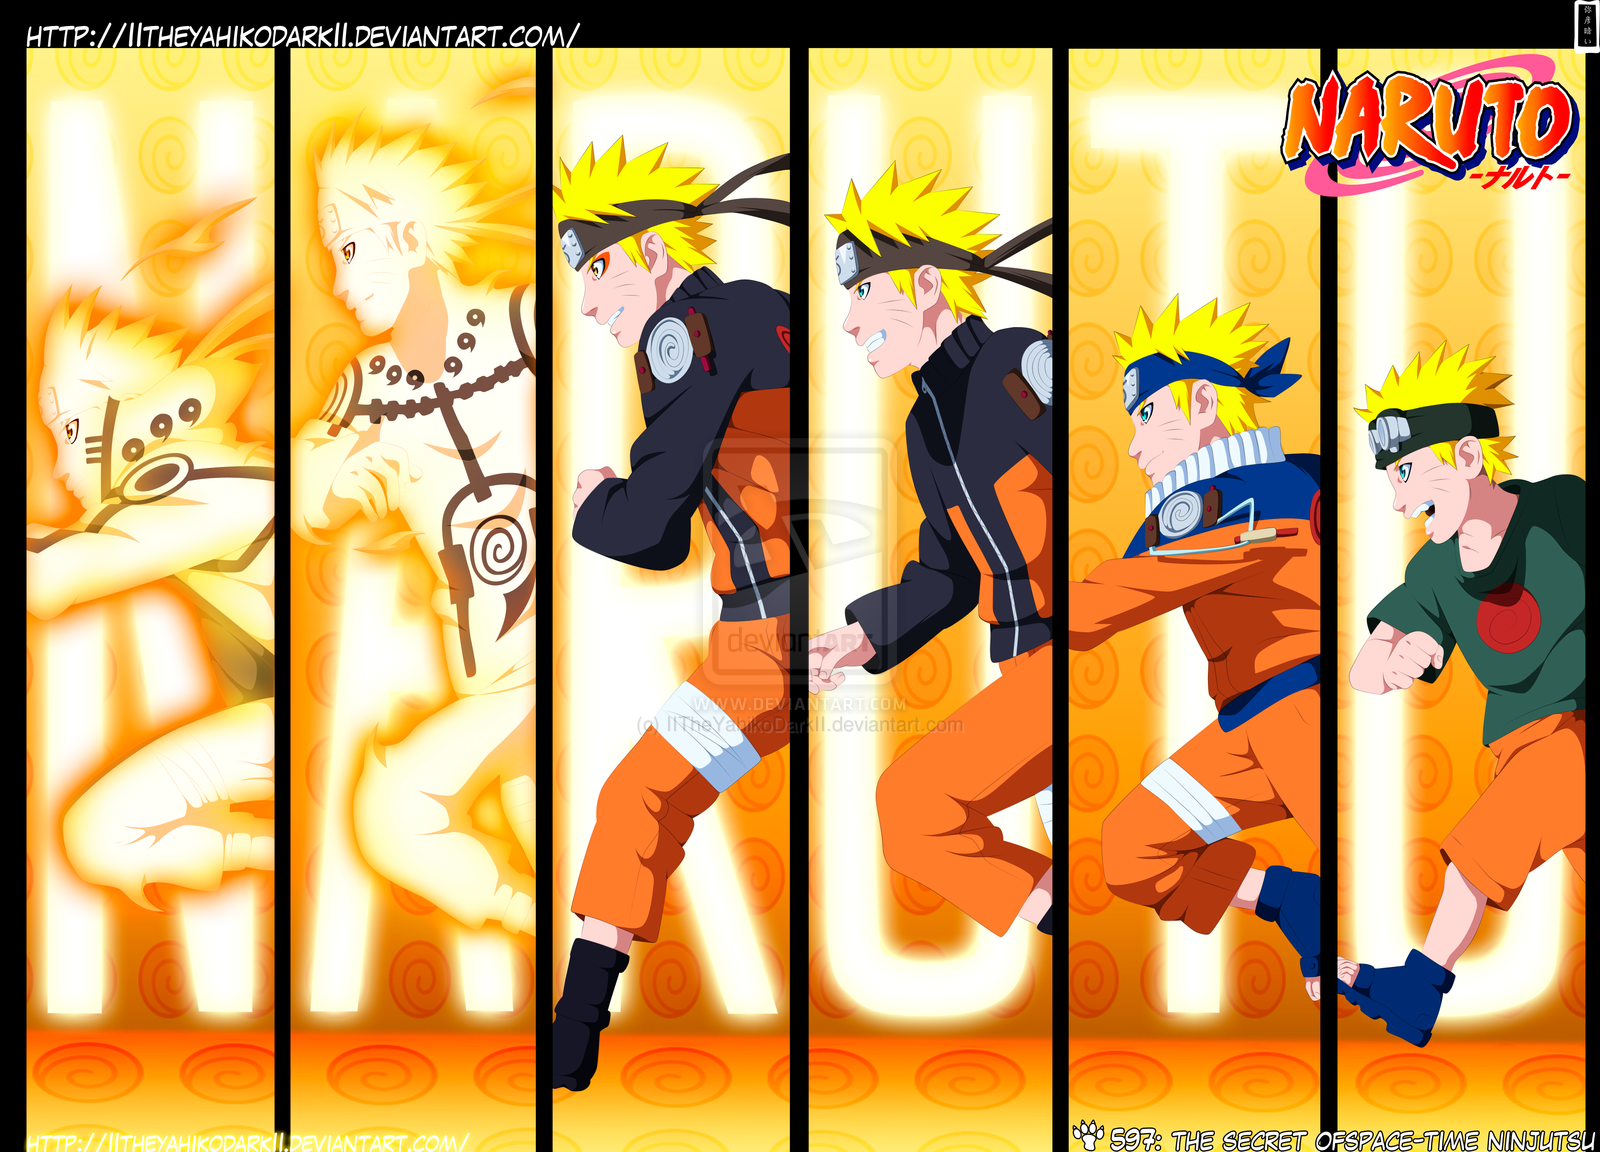 Naruto-Shippuden-Manga-HD-Wallpapers-631.png